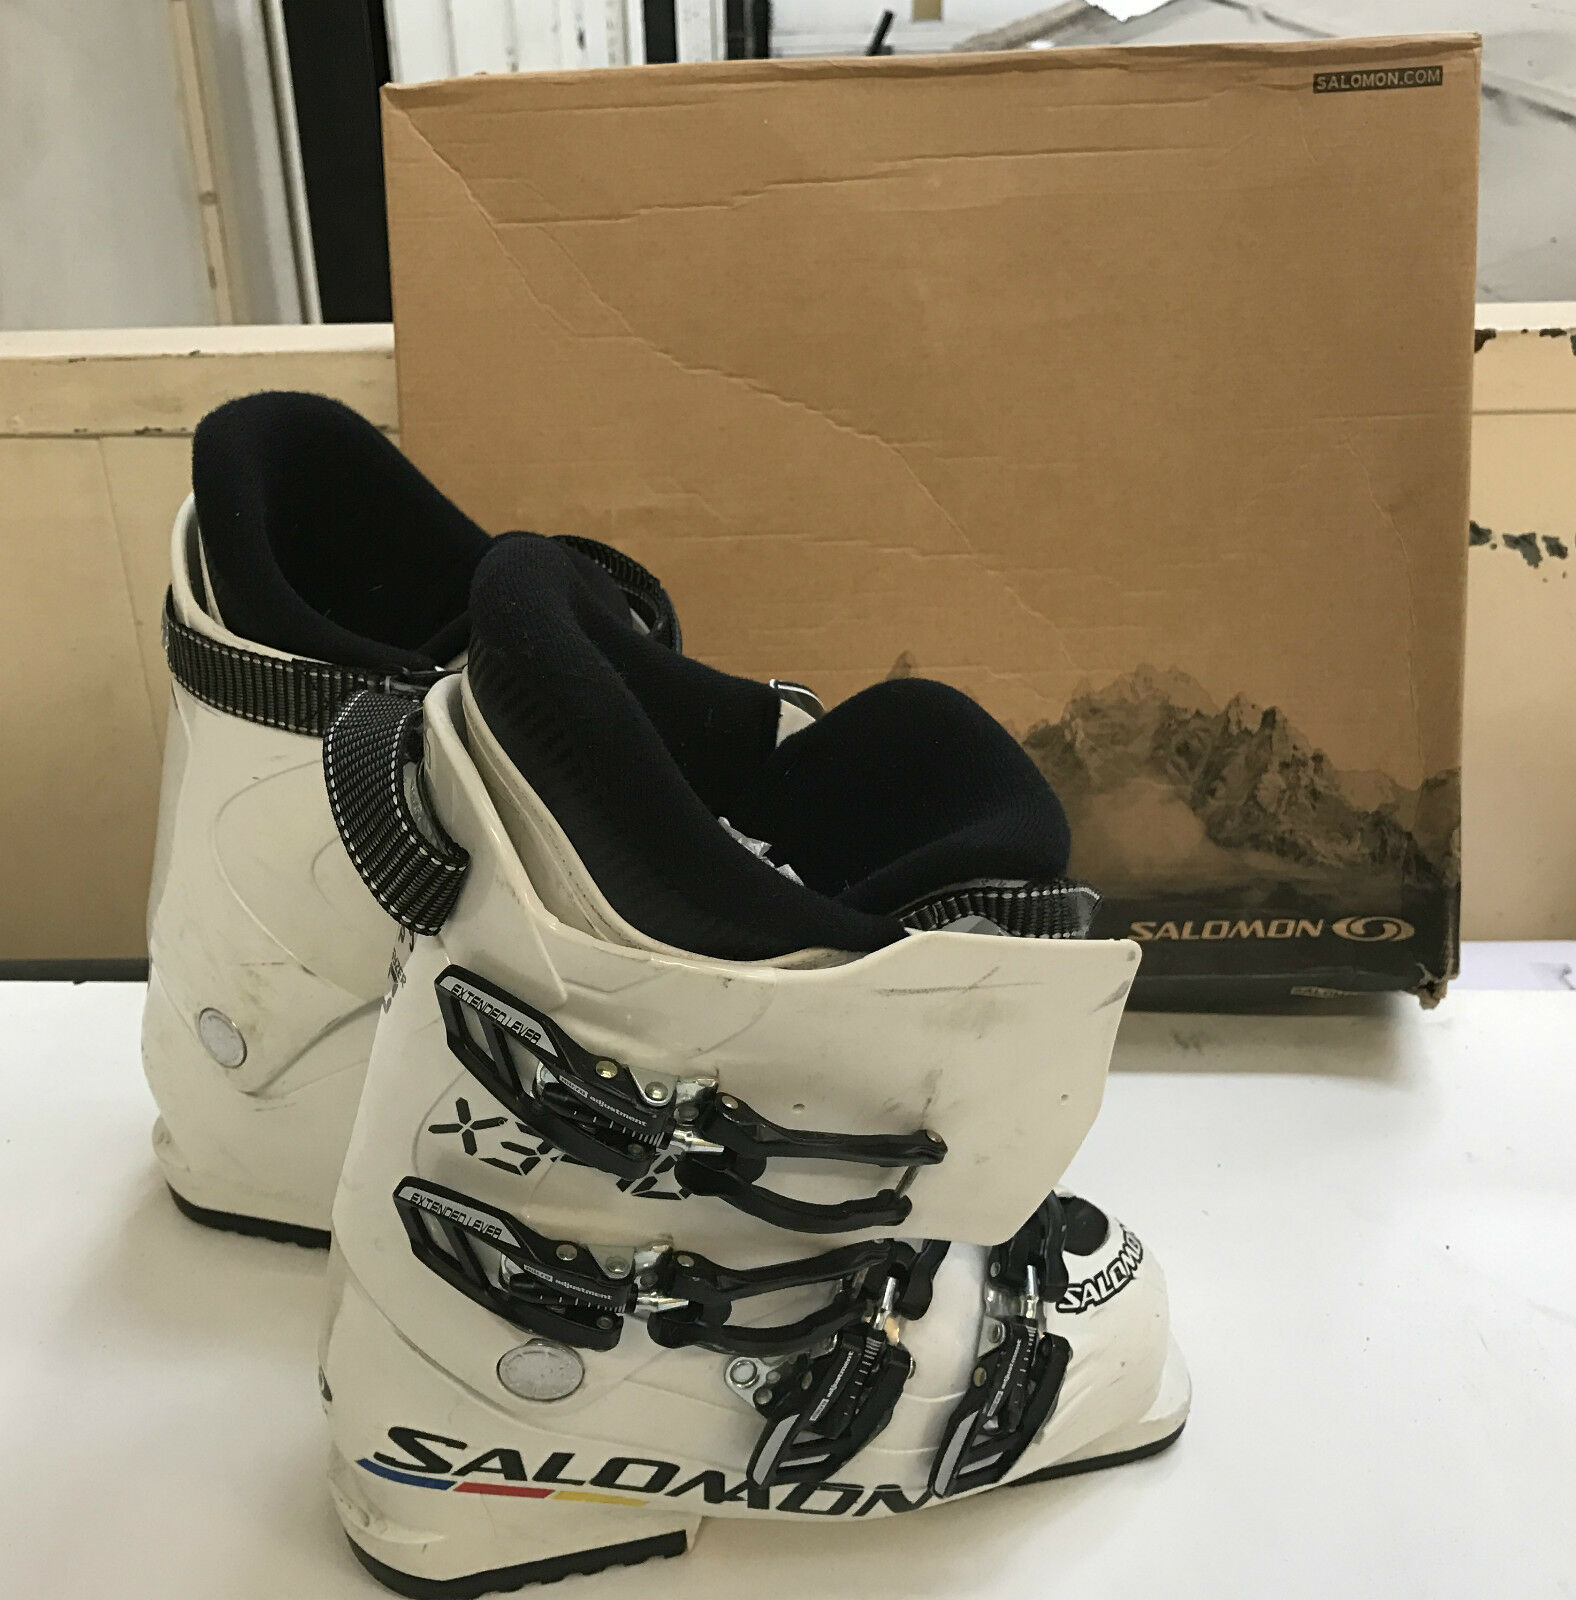 Salomon X3 70 Alpine Ski BOOTS White Size 24 in Original Box - AD